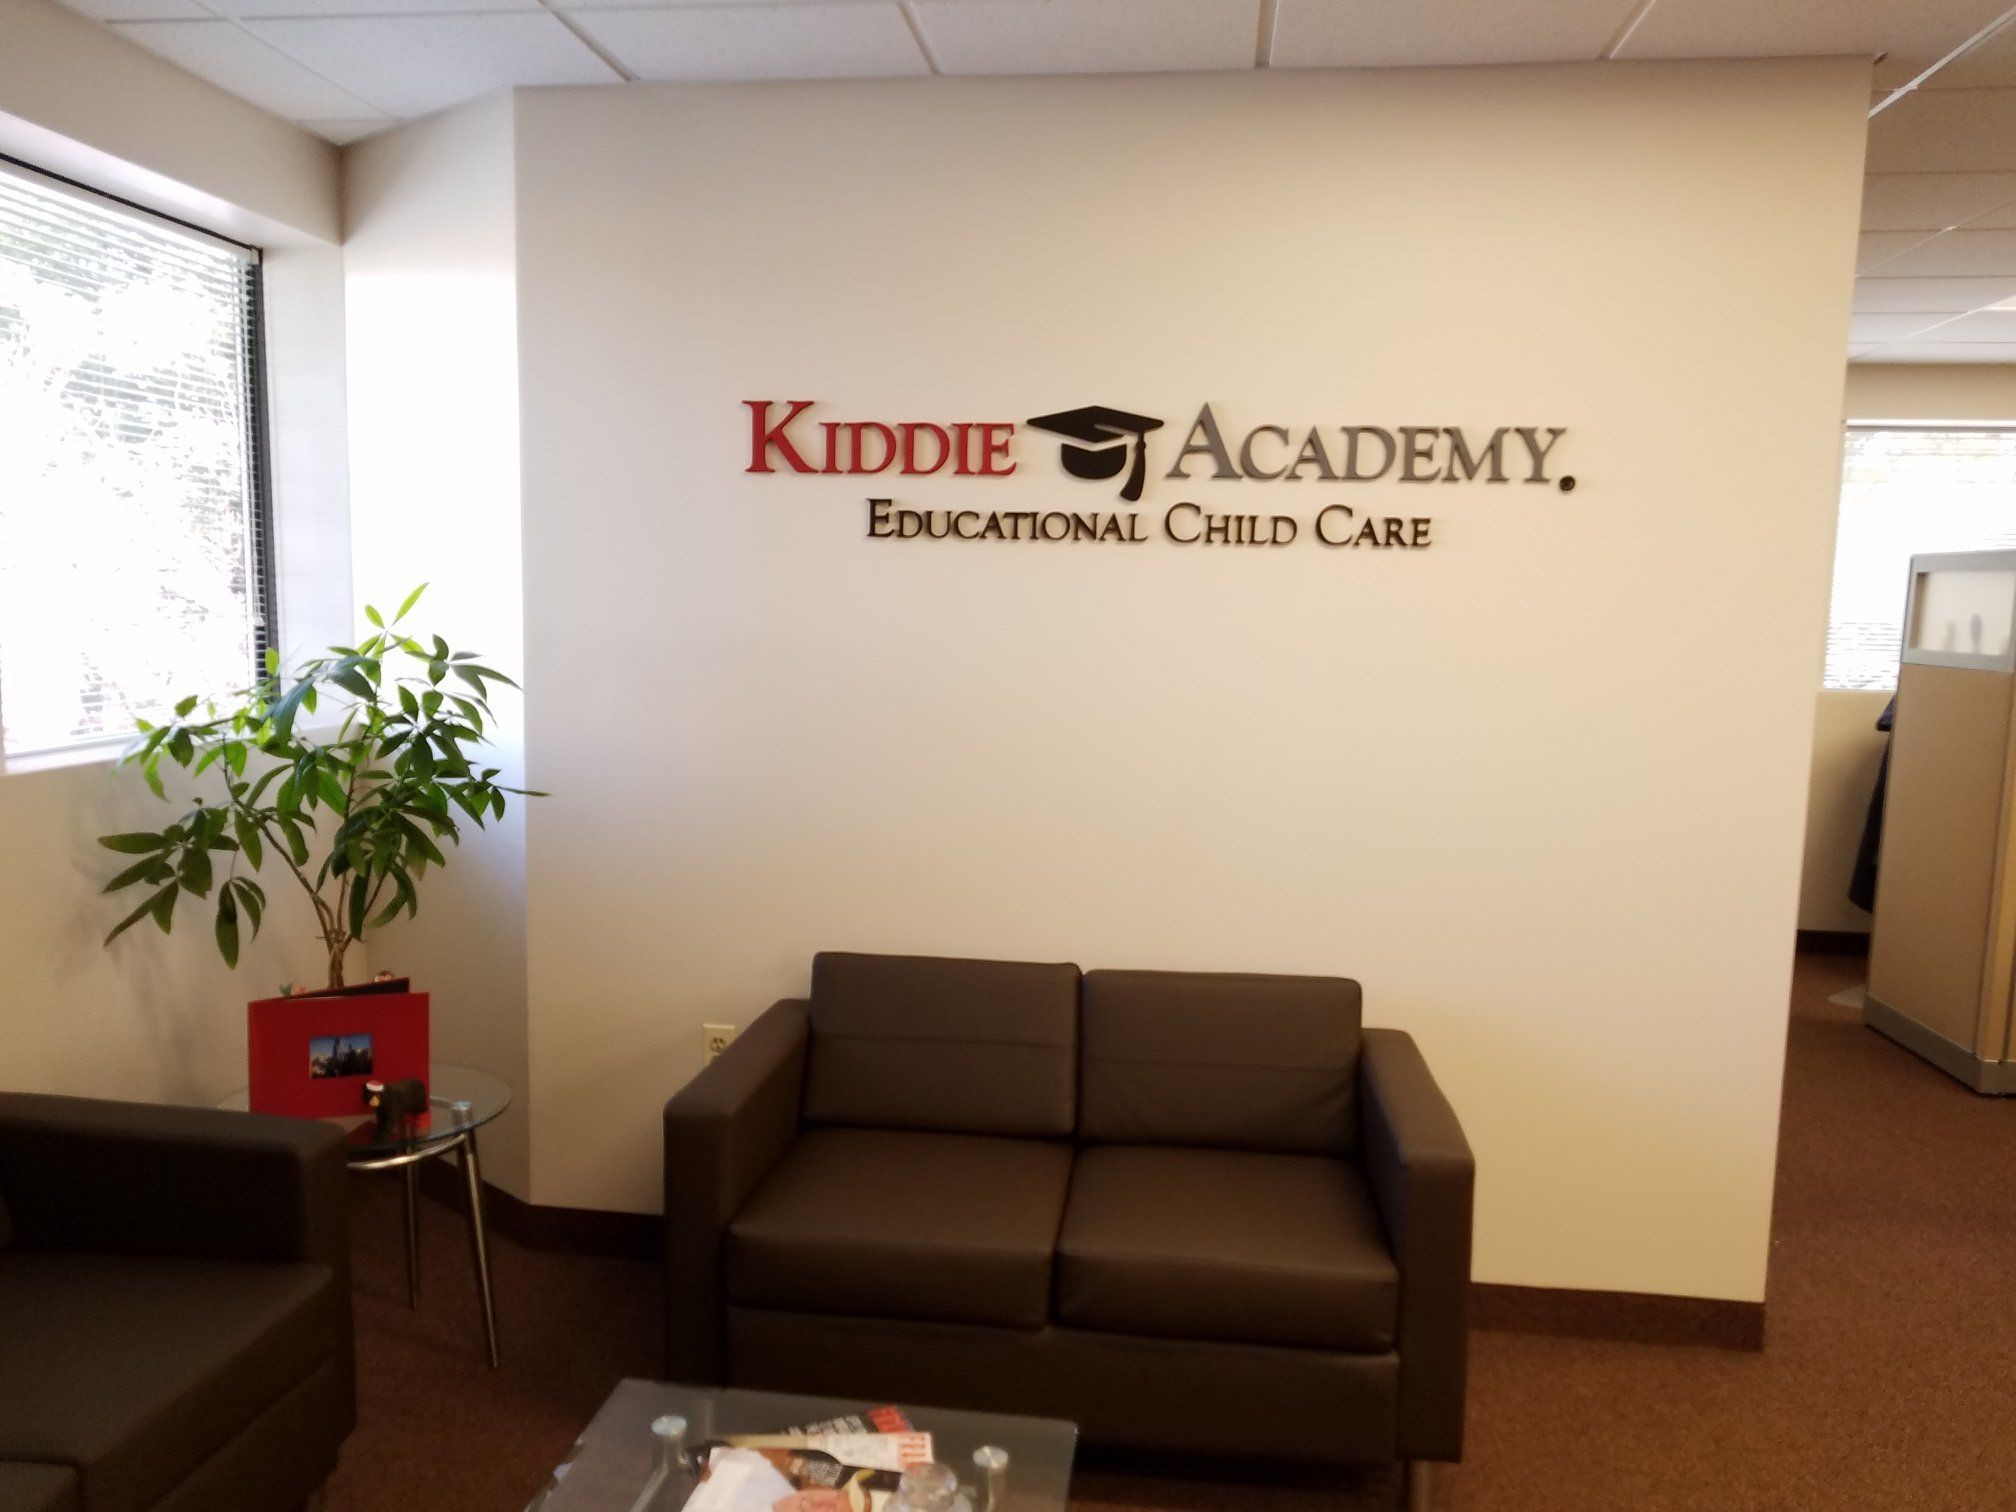 3D Signs & Dimensional Letters & Logos | Interior Signage & Indoor Signs | School, College, & University Signs